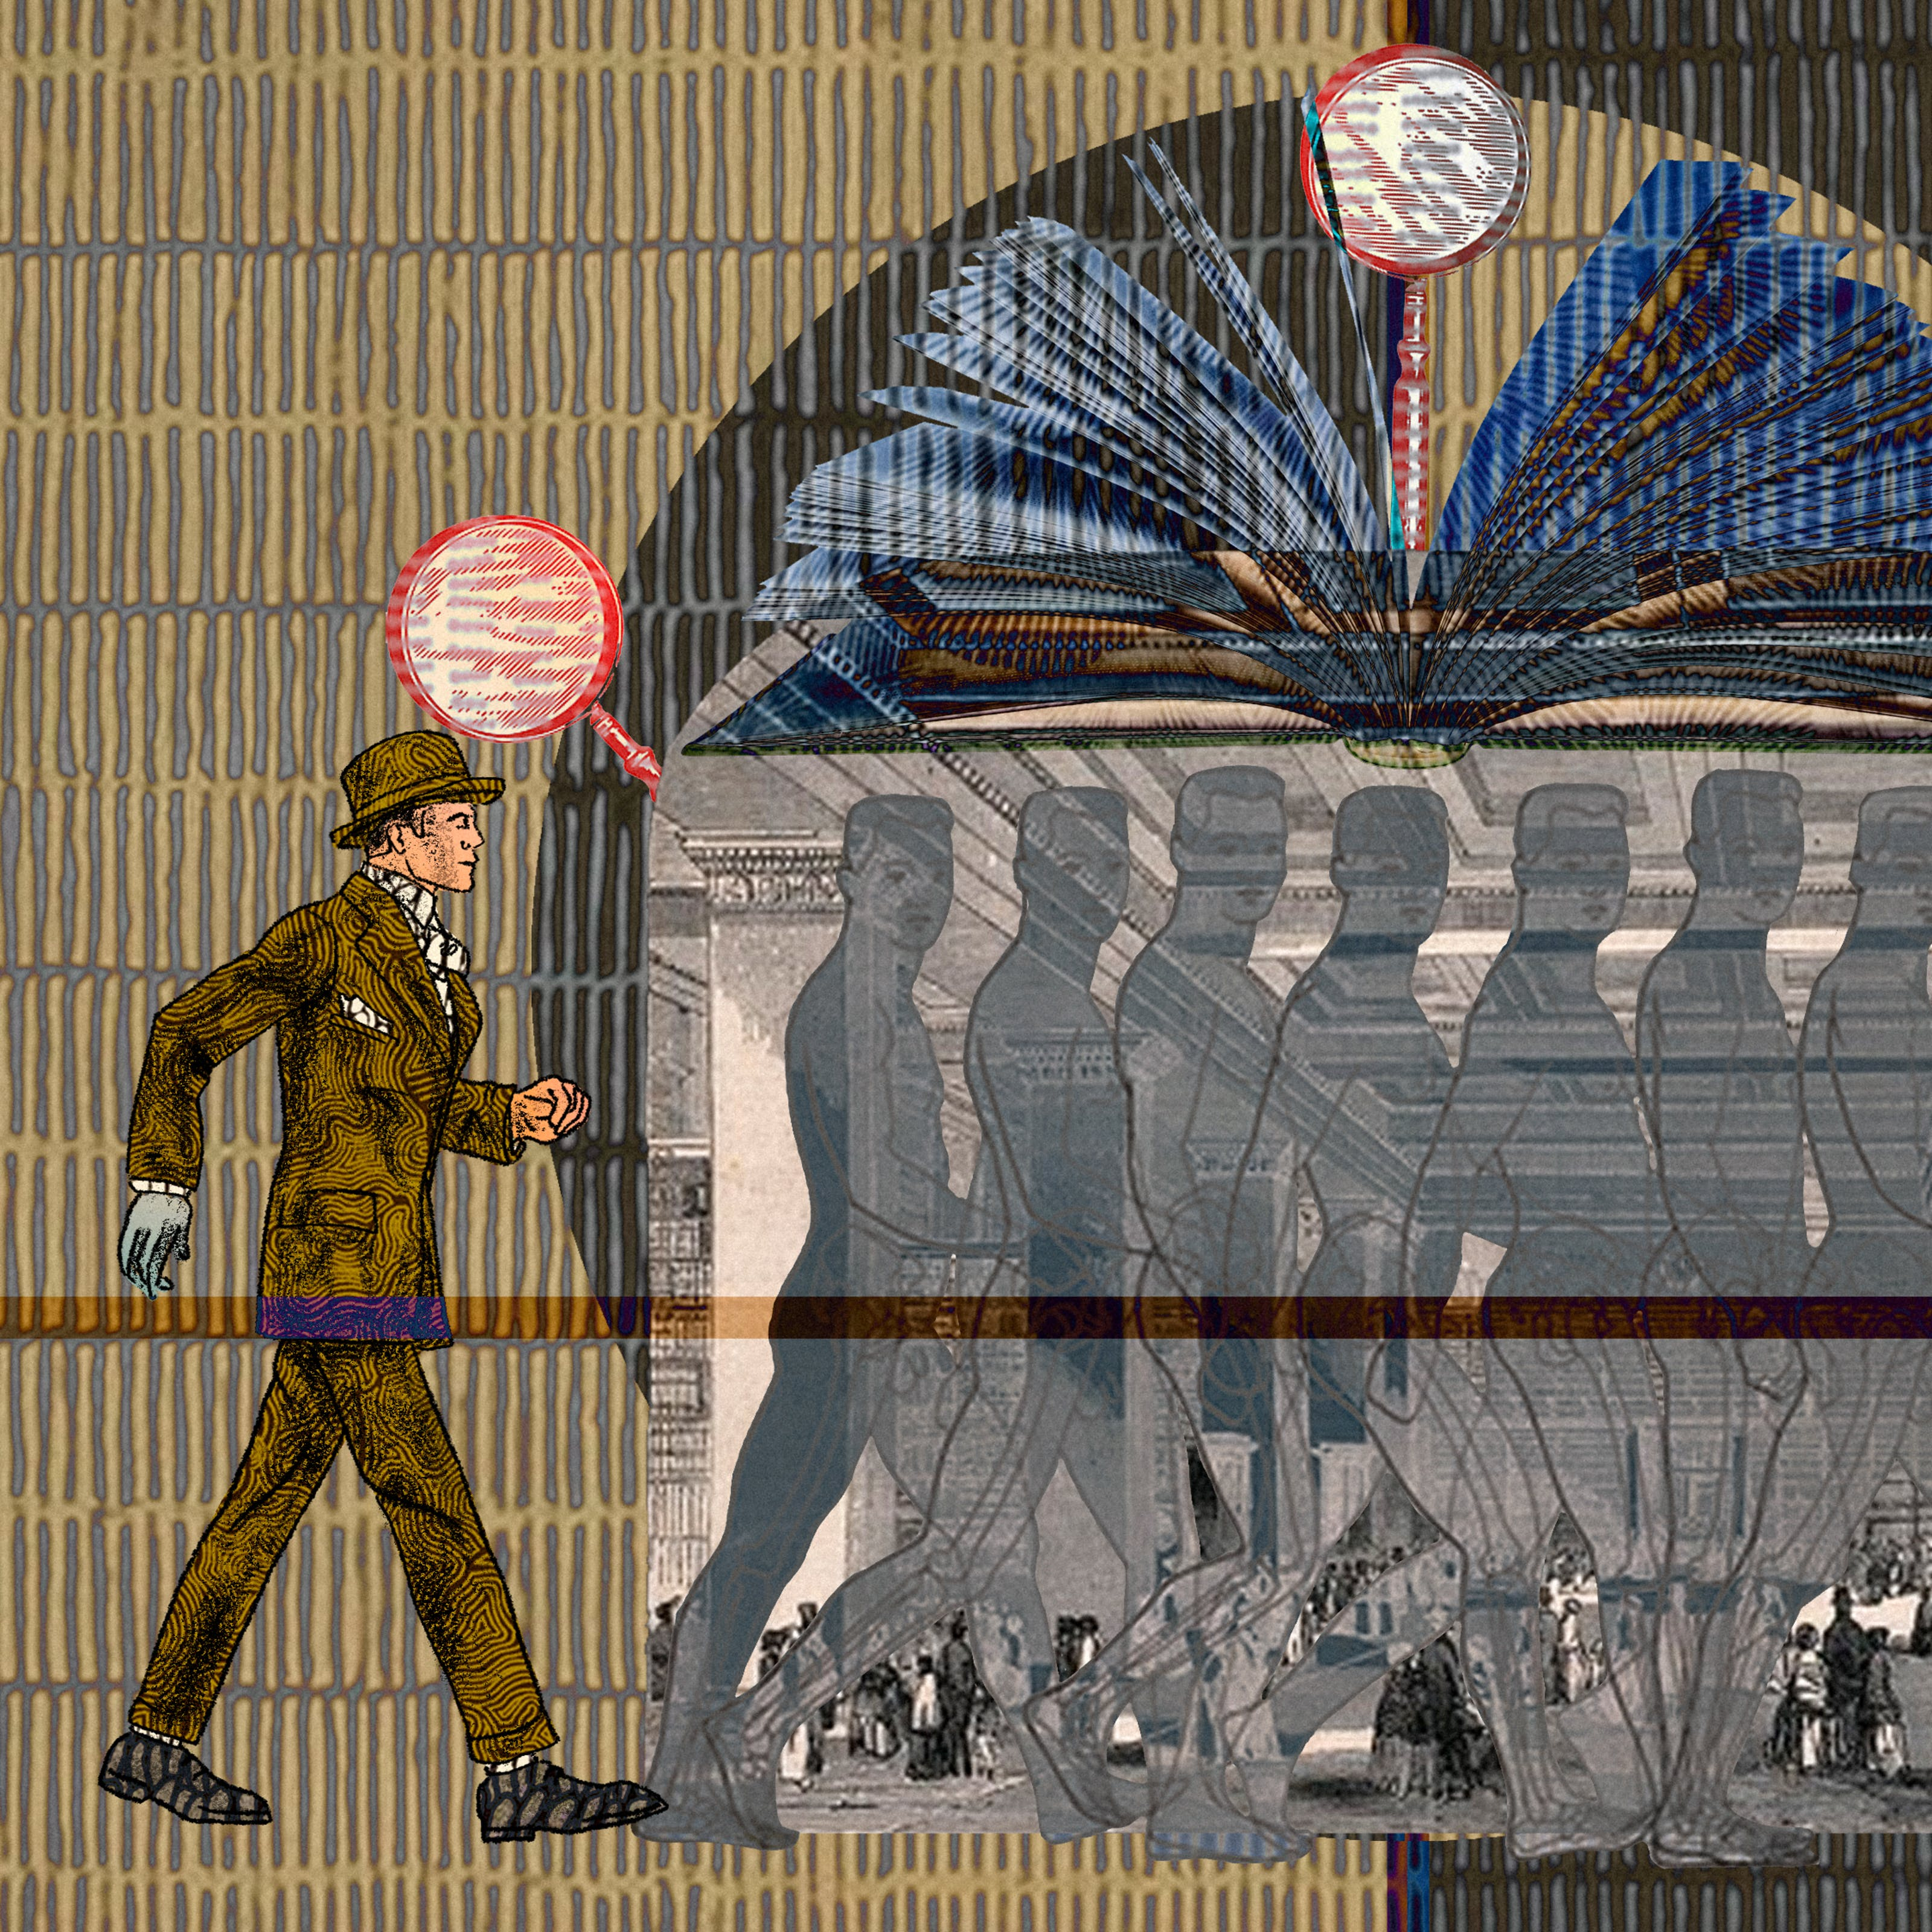 An abstract digital illustration depicting a young Victorian man walking into the entrance of a library and being transformed into an ill looking, tired and diseased old man. In the background is an archive image of a place of learning, decorated with magnifying glasses as ornaments and open book forming an arch overhead.